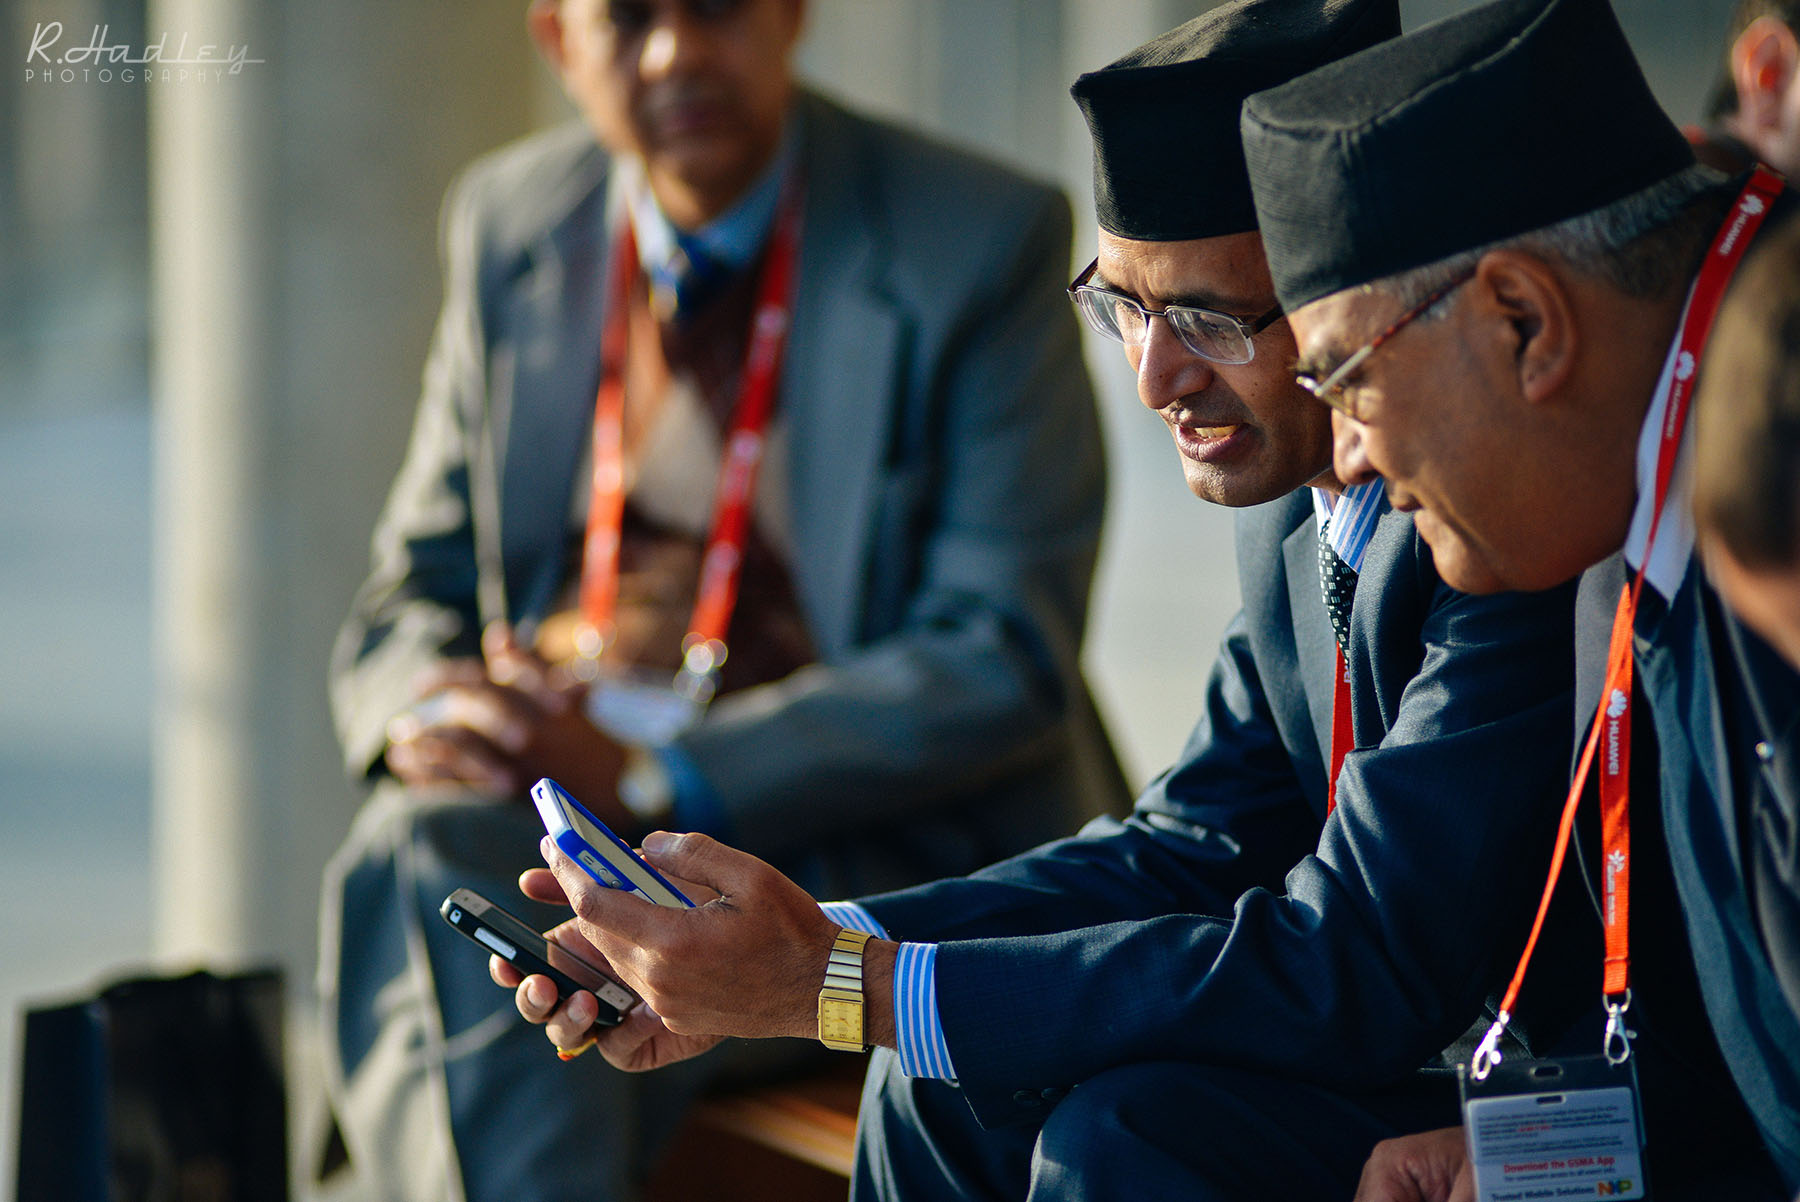 Event photographer and videographer at the Mobile World Congress at the Fira in Barcelona